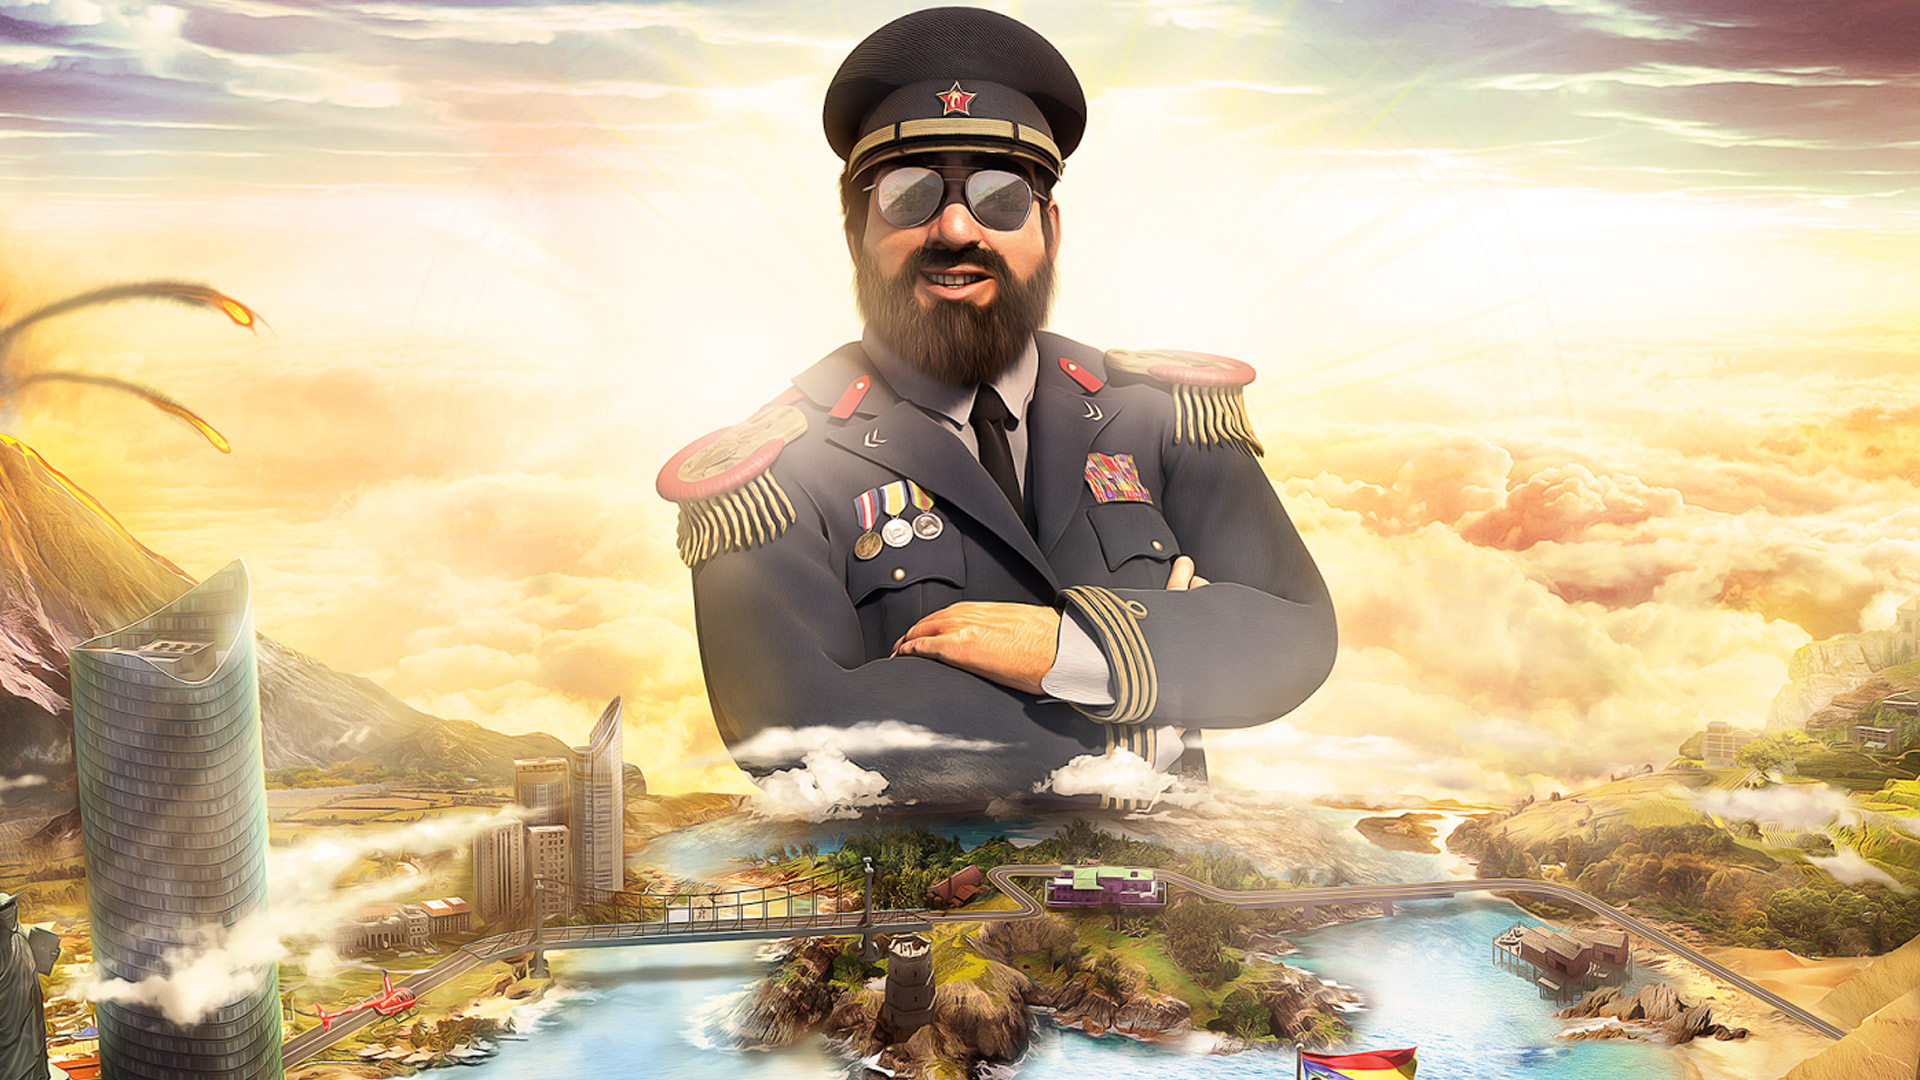 E3 2018: Kalypso Media Shows Tropico 6 and Shadows: Awakening